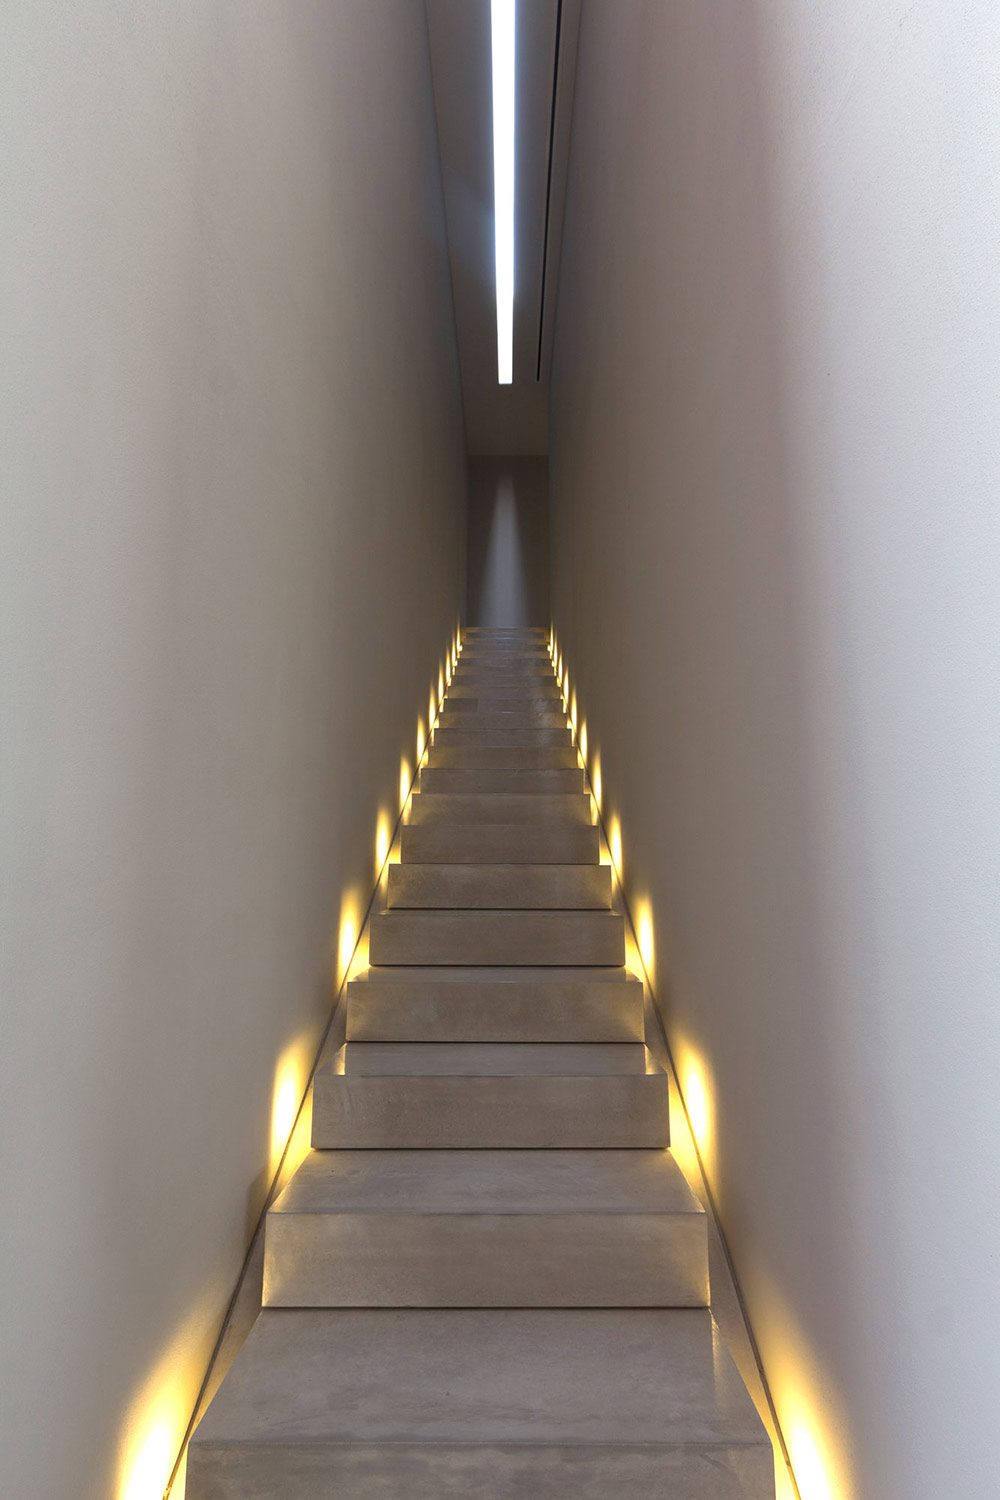 Stairs, Lighting, Casa La Punta in Punta Mita, Mexico by Elías Rizo Arquitectos